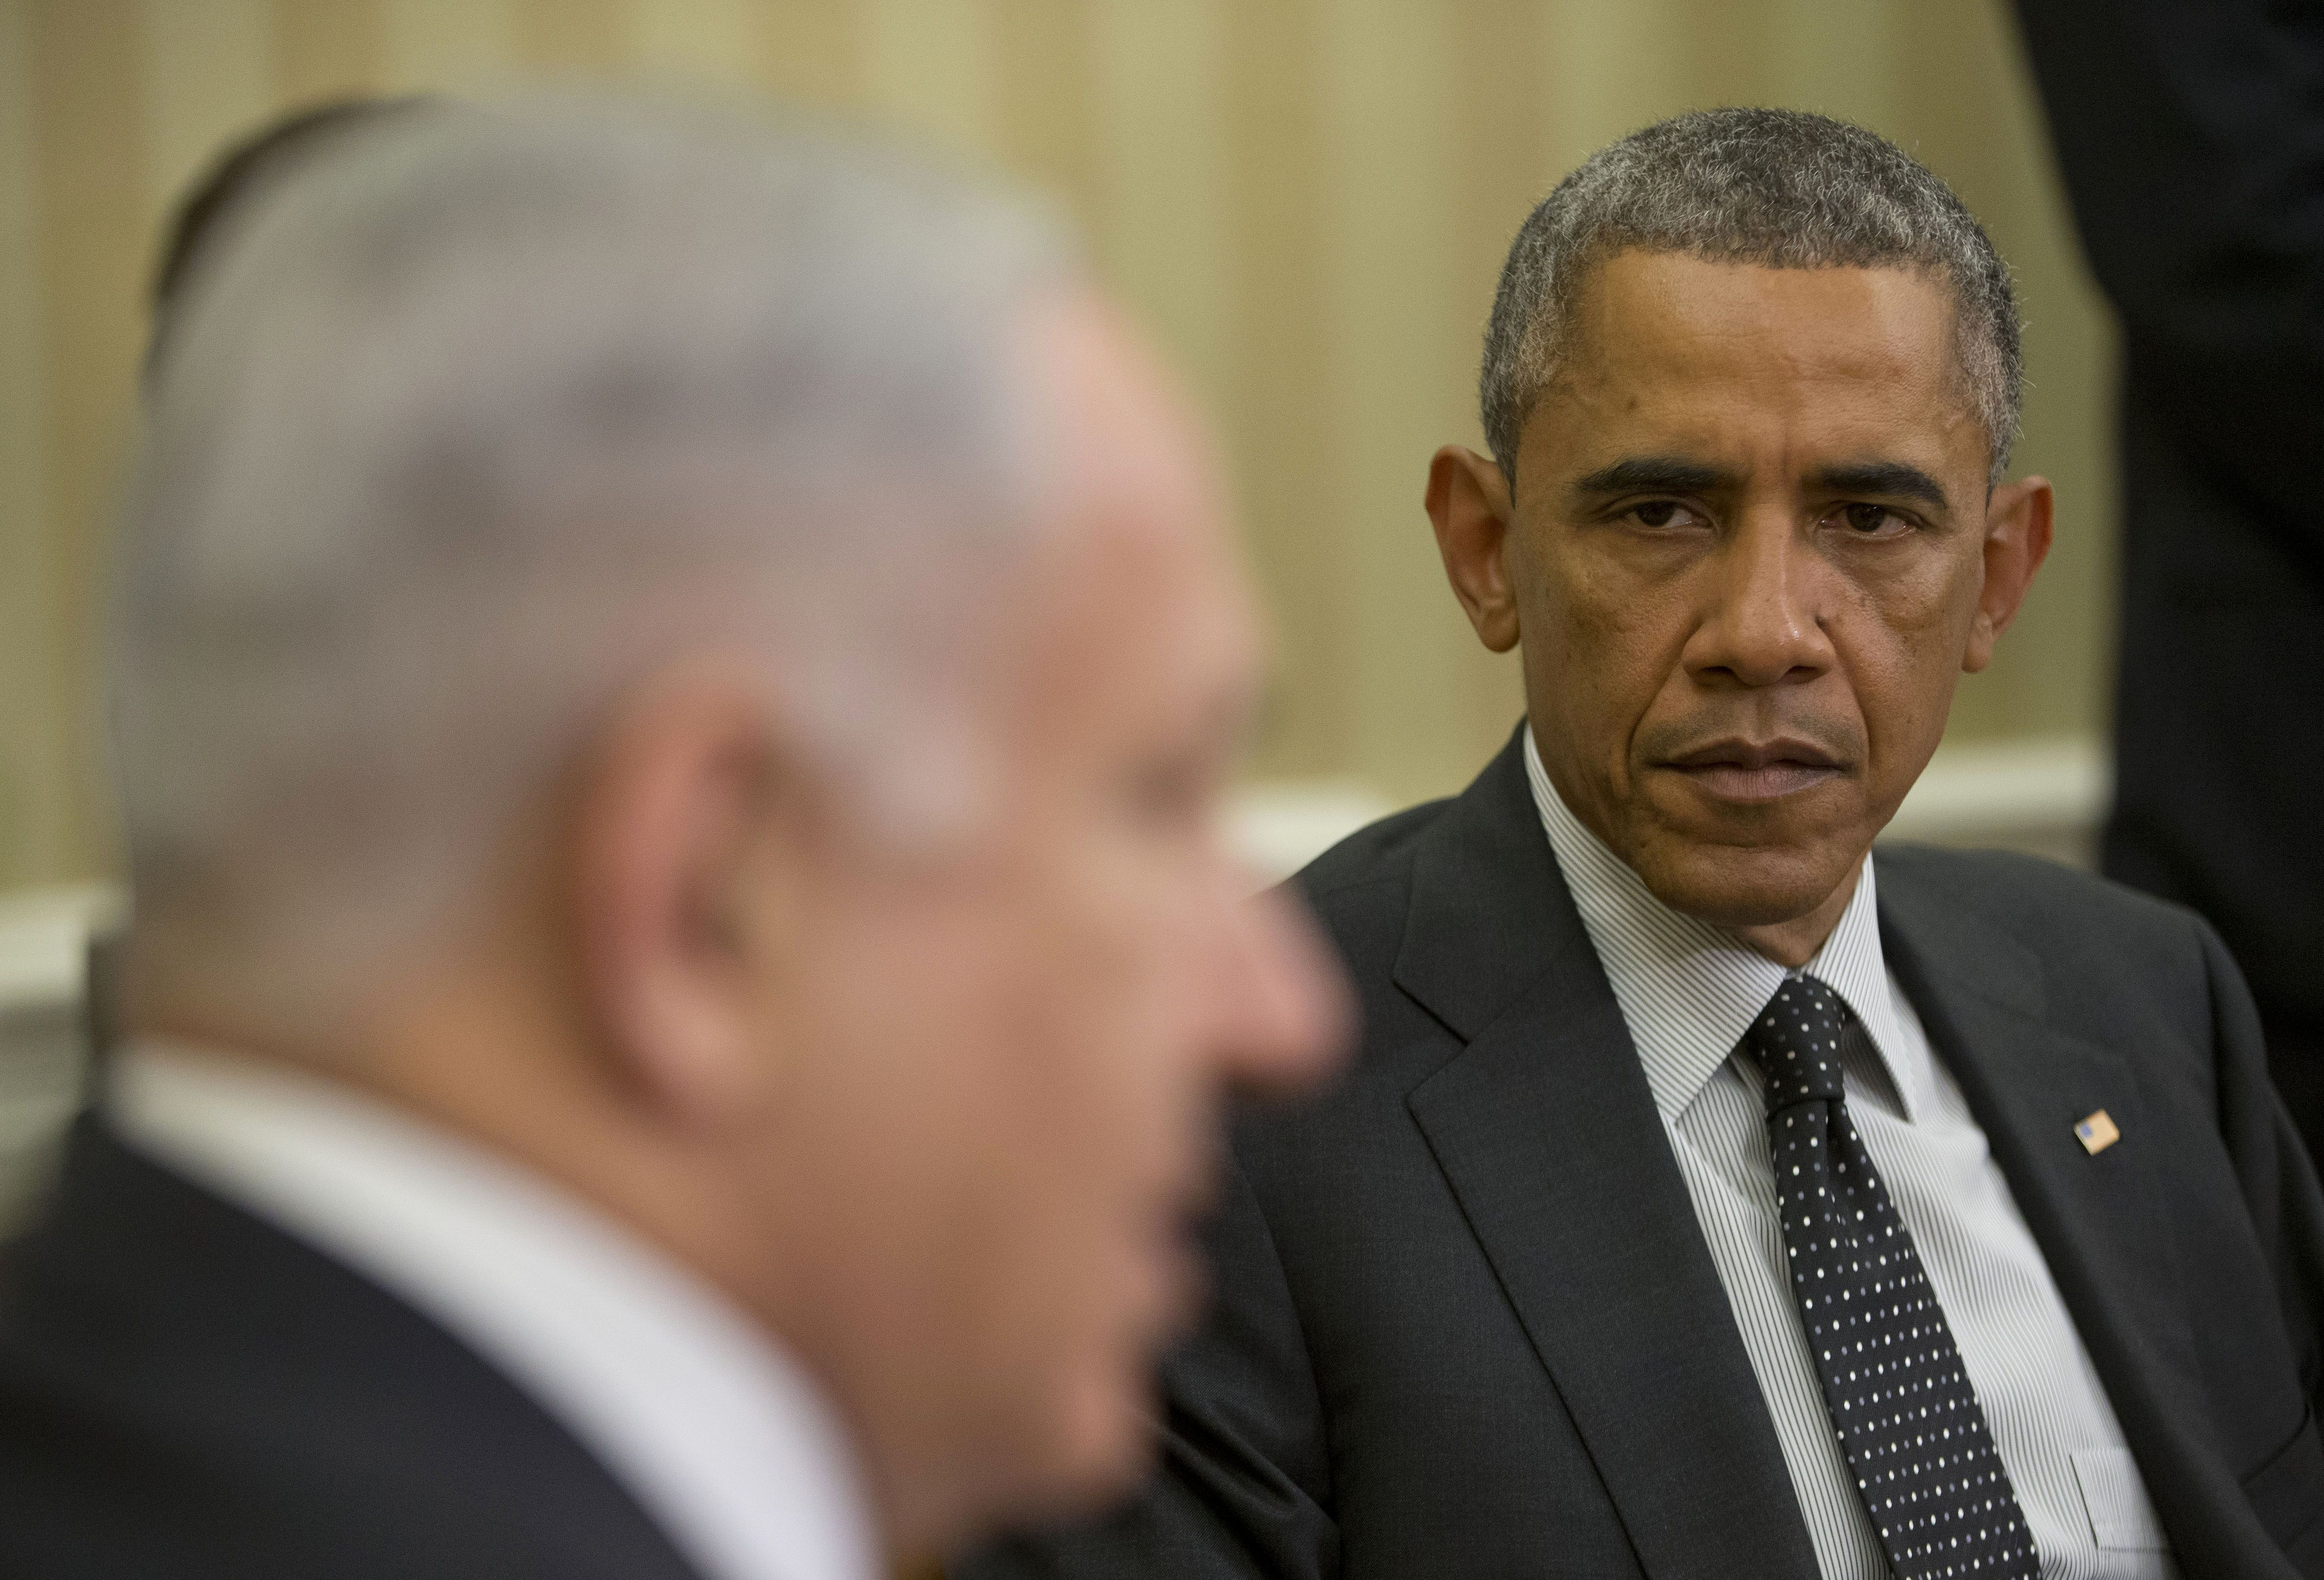 President Obama threatened to use the U.S. military to shoot down Israeli fighter jets last year if they attempted to destroy Iranian nuclear facilities, the Bethlehem news agency Ma'an reported Sunday.